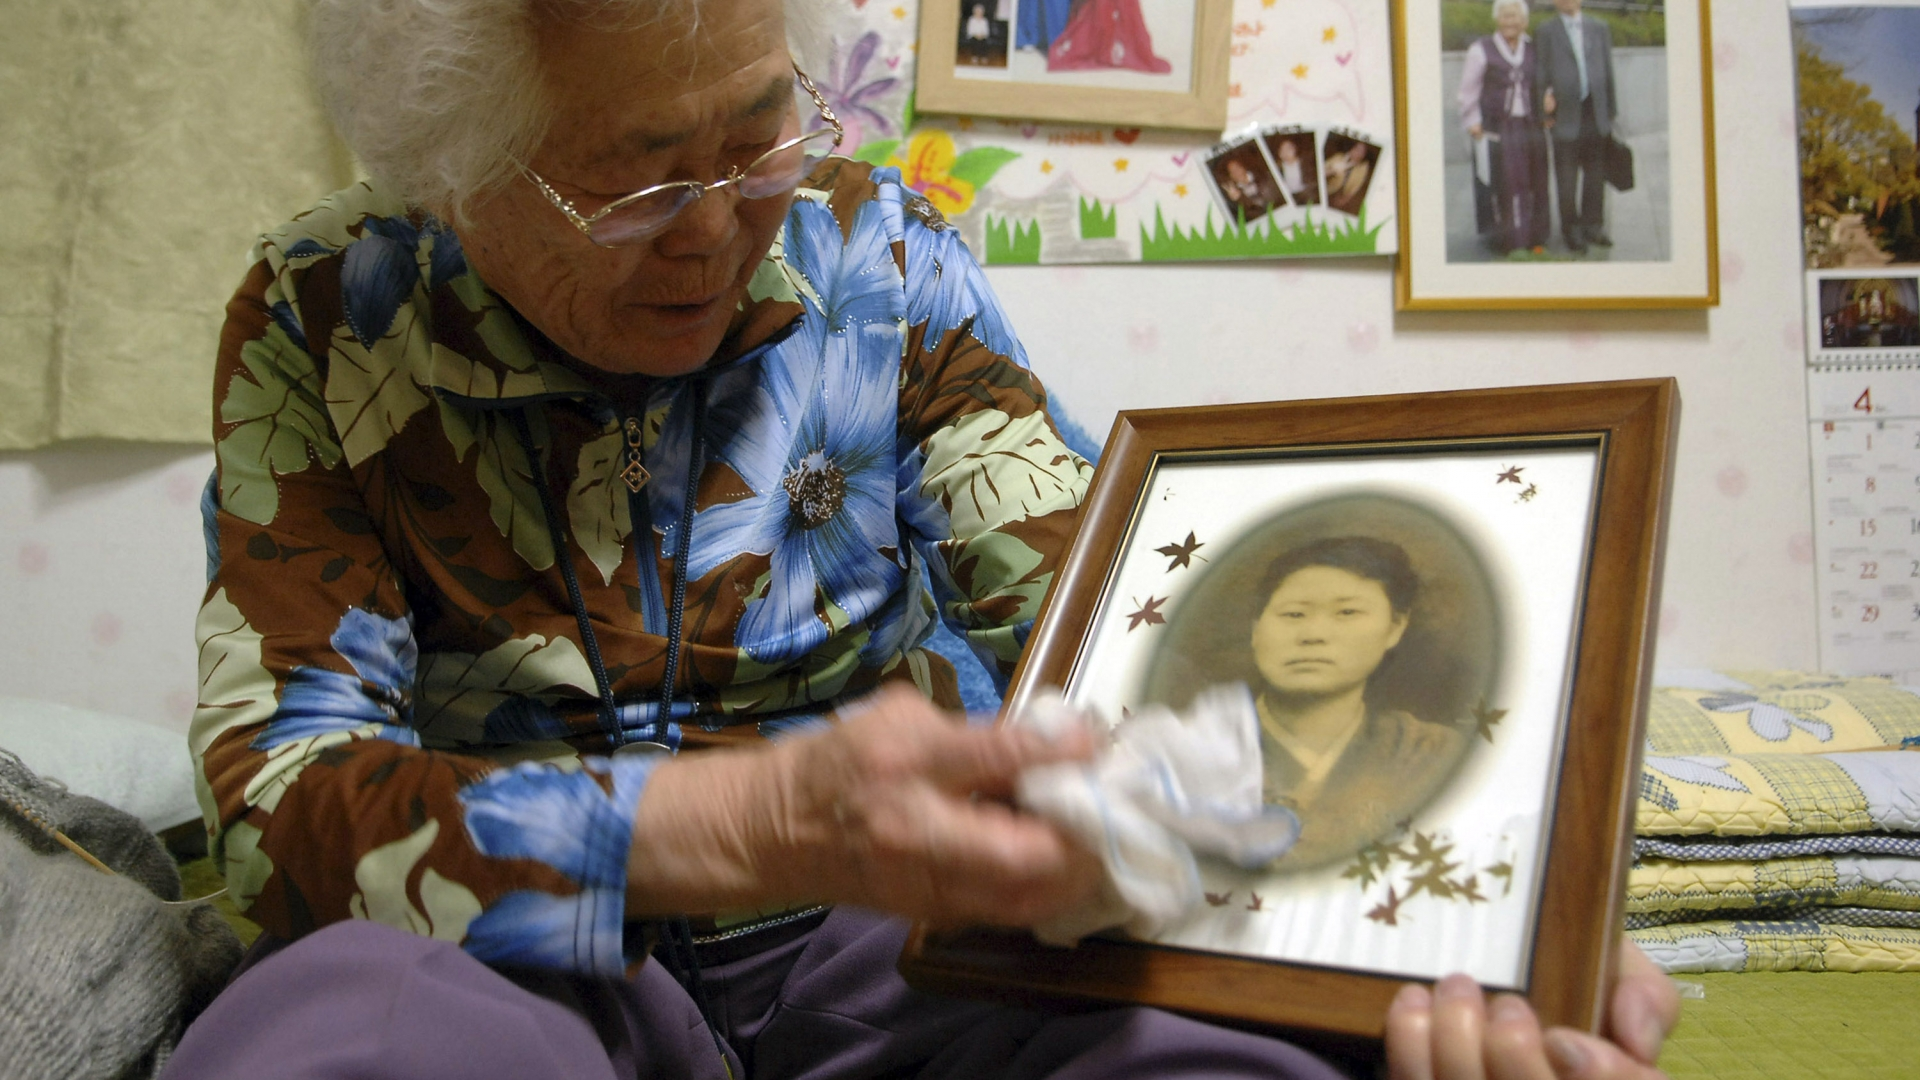 Lee Ok-seon, then 80, in a shelter for former sex slaves near Seoul, South Korea, holding an old photo of herself on April 15, 2007. (Credit: Seokyong Lee/The New York Times/Redux)